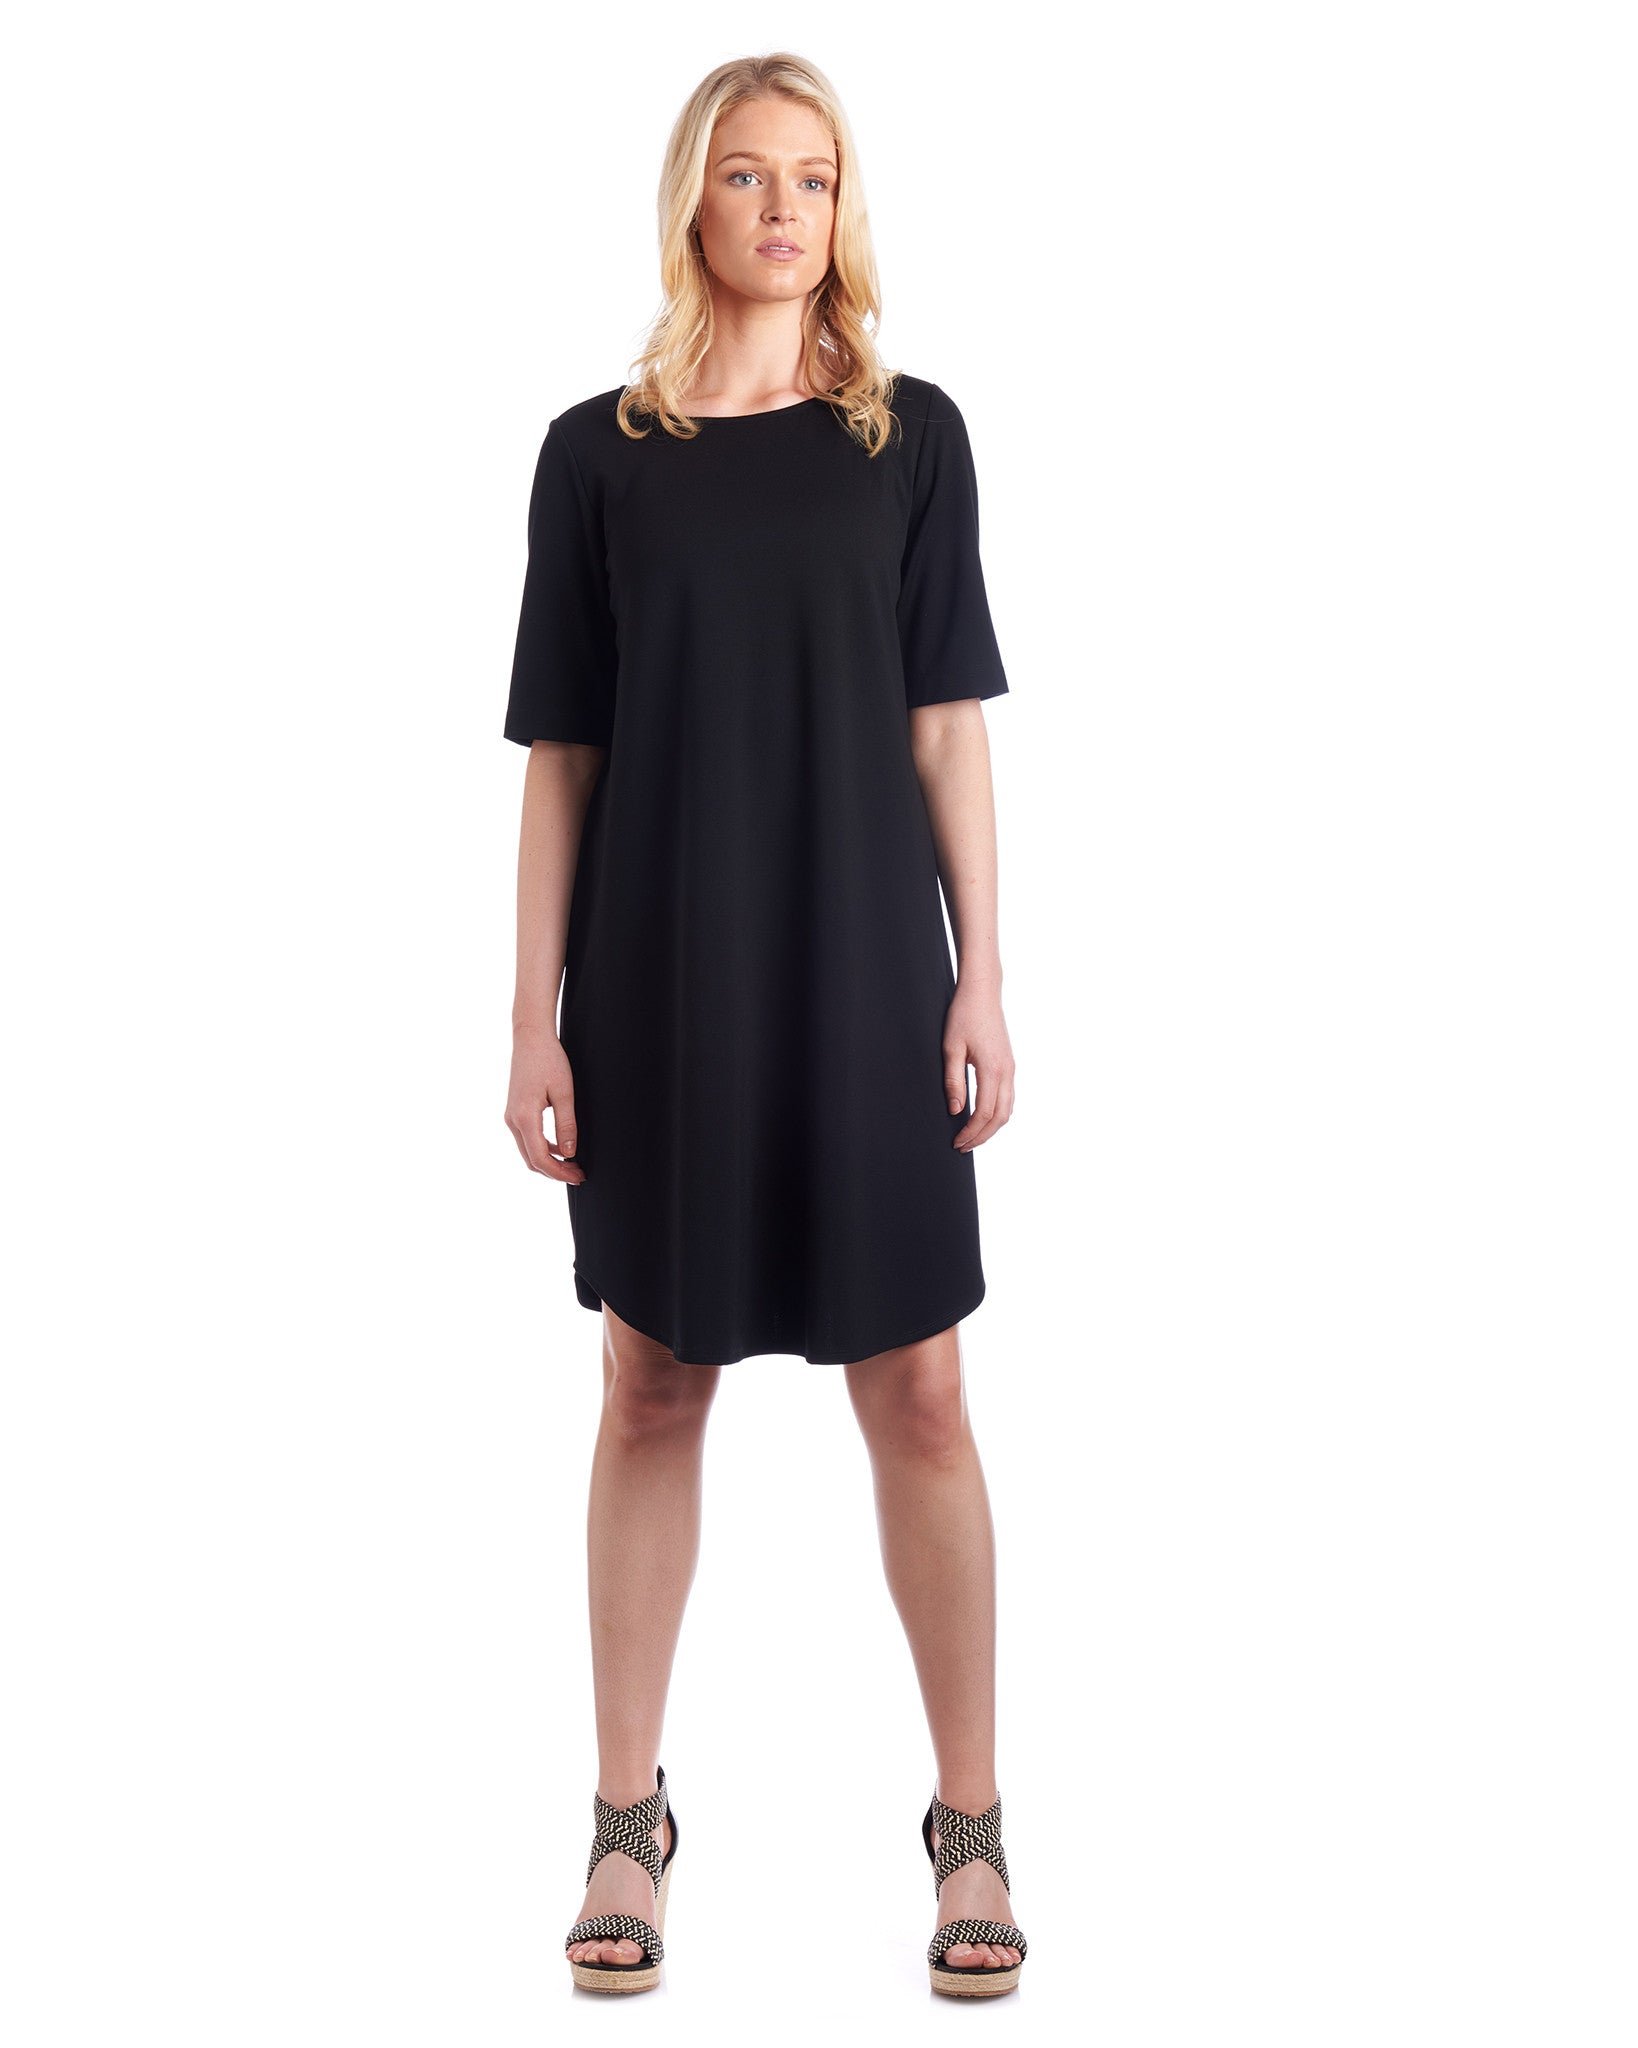 Relaxed fit t-shirt dress can be customised in length to wear as a top as well.